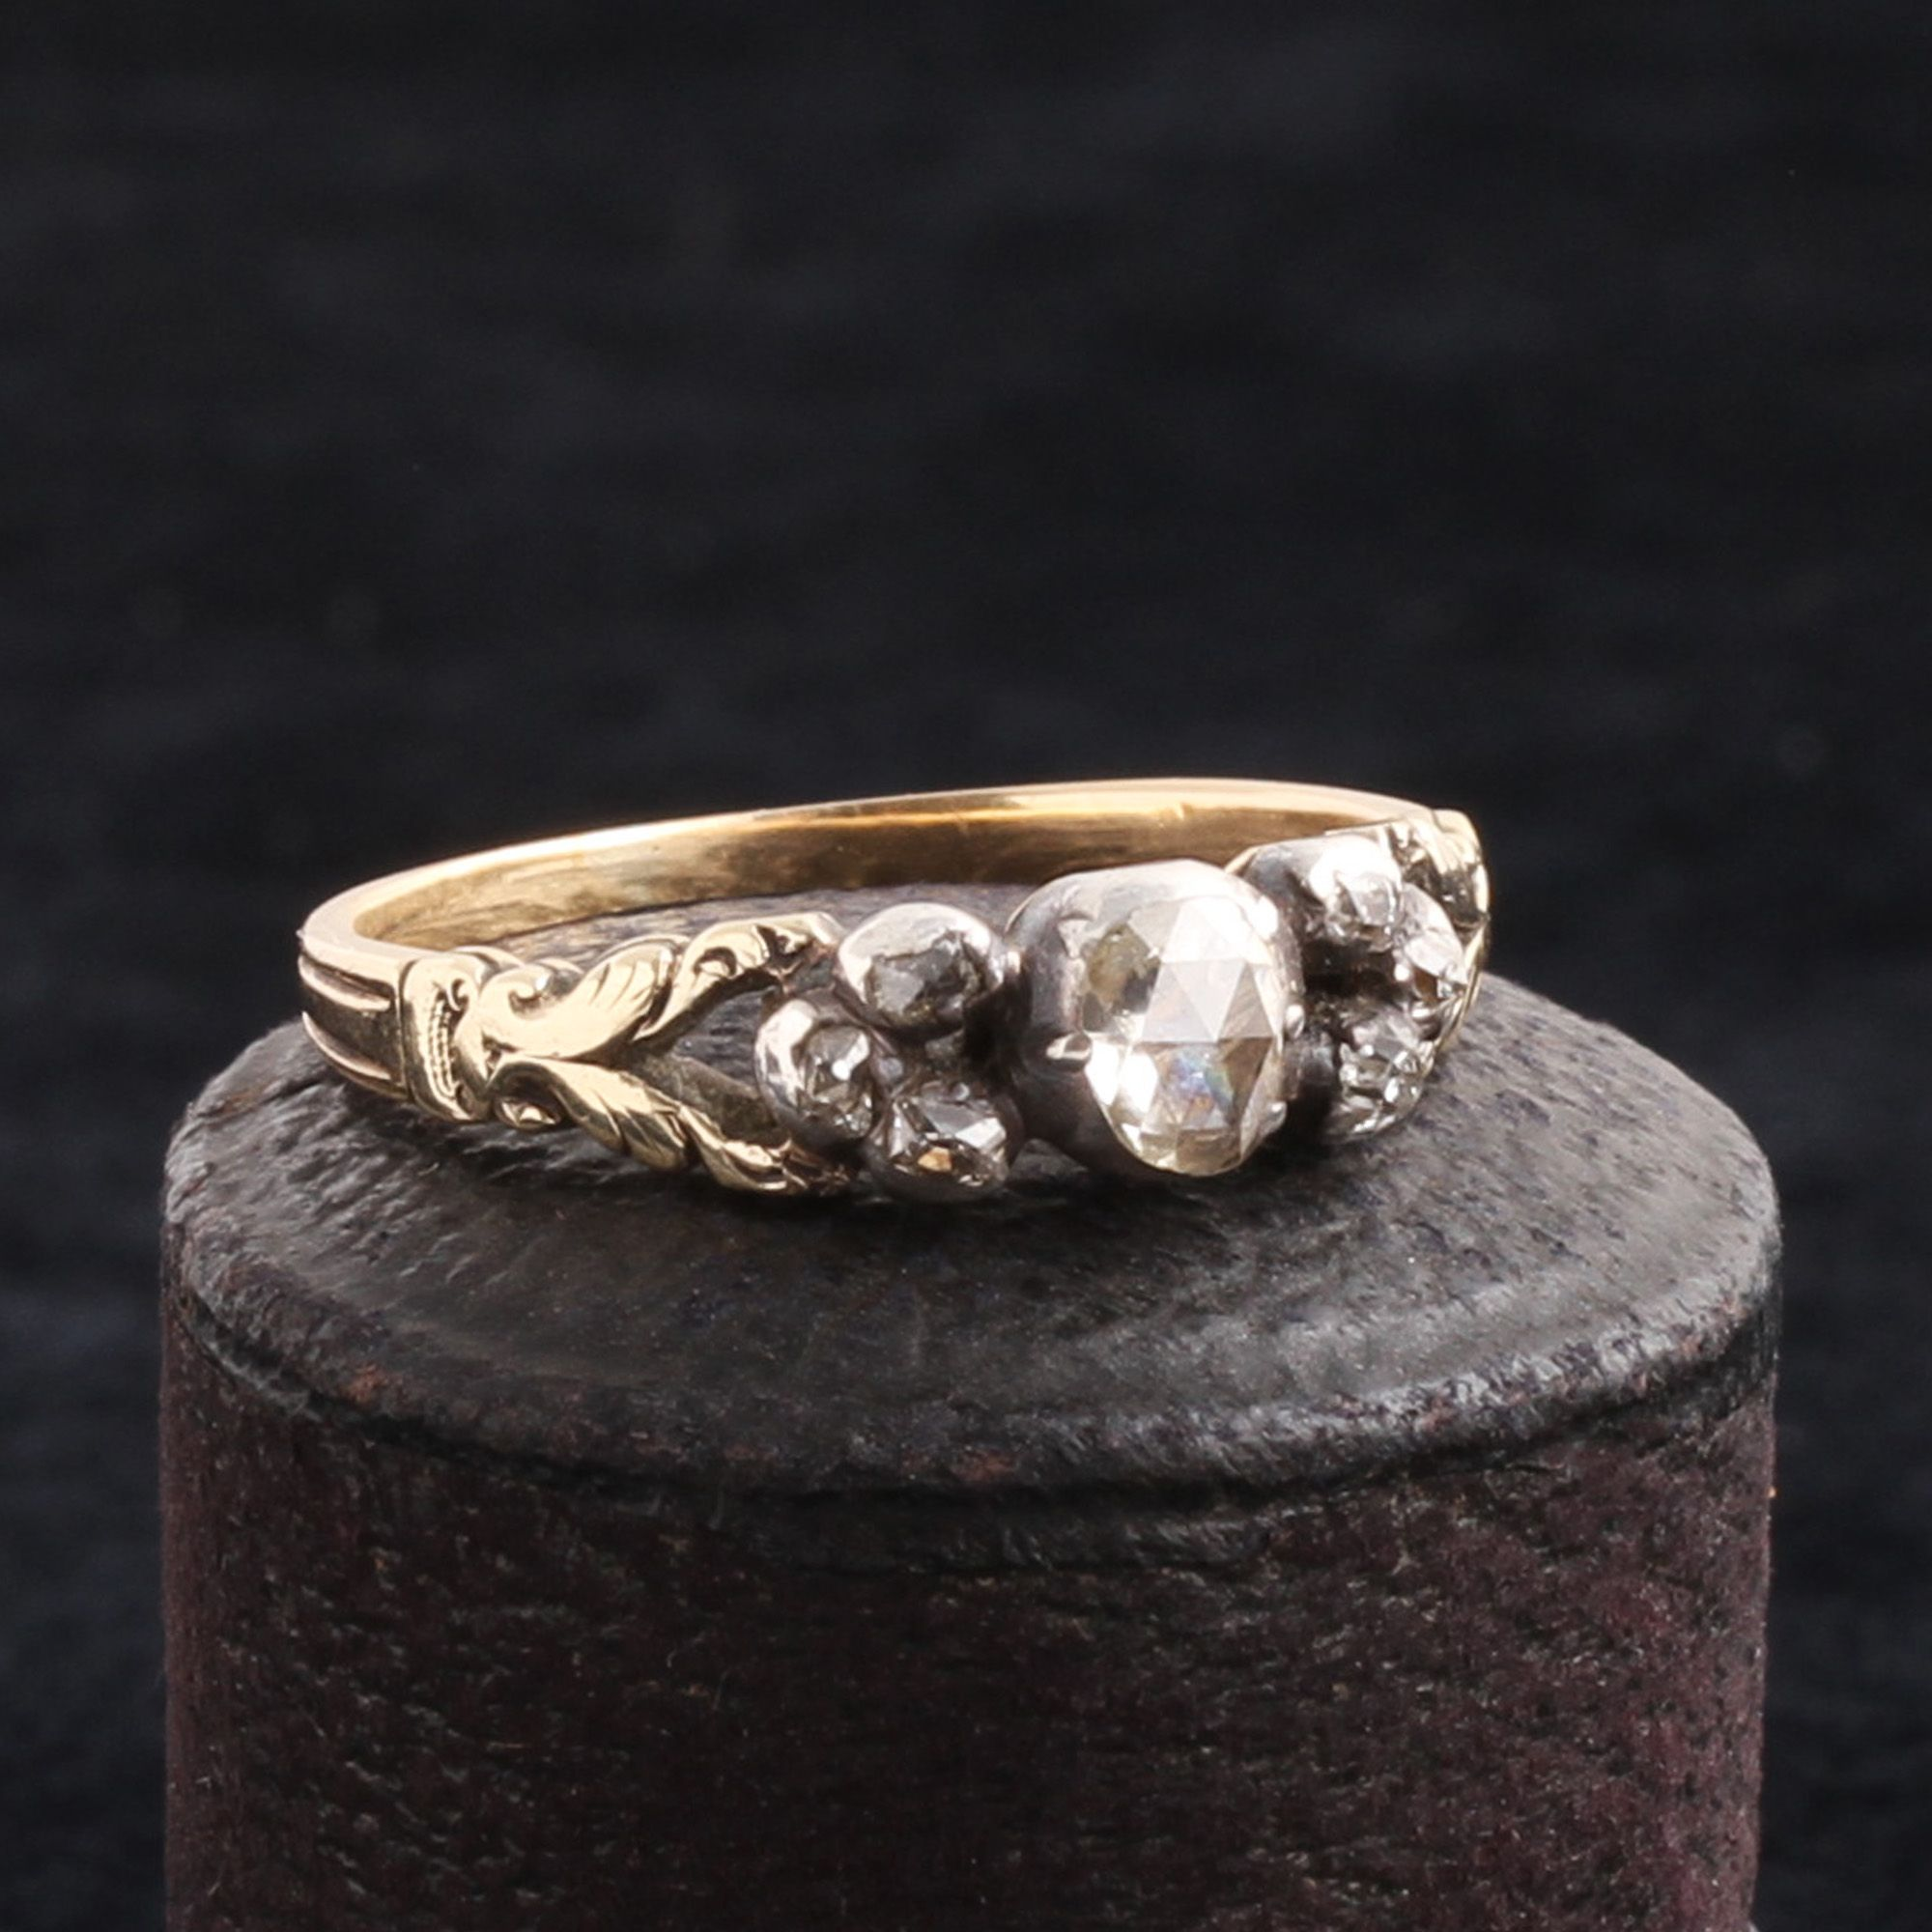 Georgian Diamond Ring with Trefoil Accents